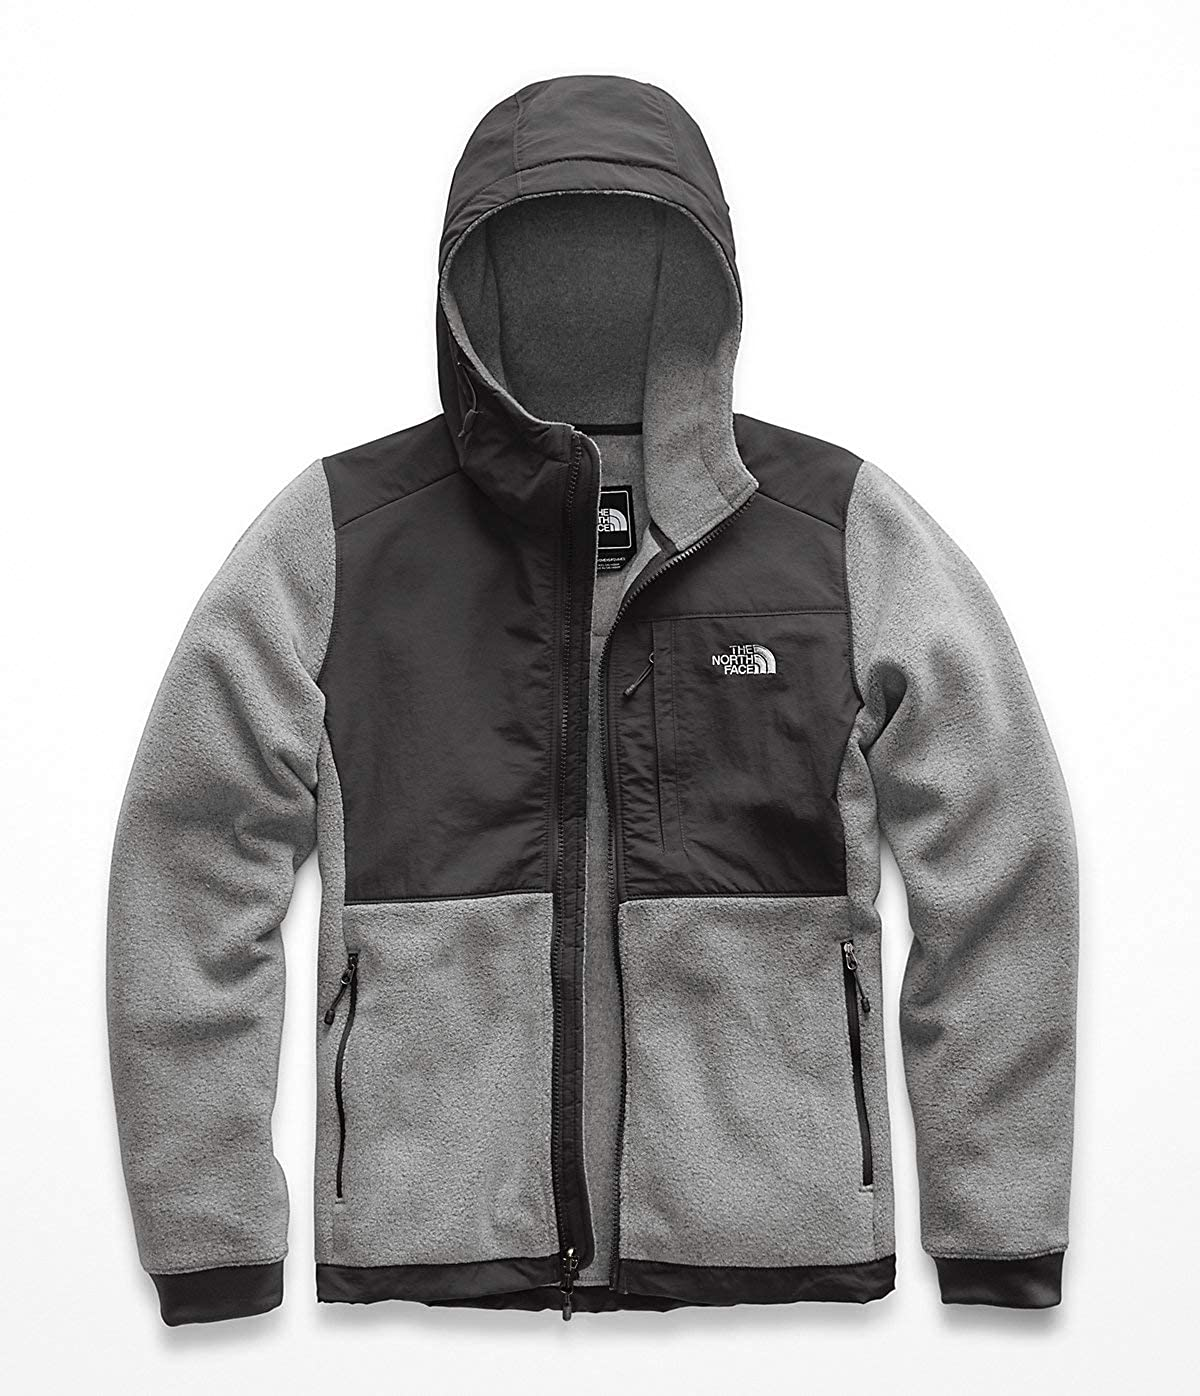 6e909cbc9 The North Face Womens Denali 2 Hoodie NF0A3SX1 at Amazon Women's ...